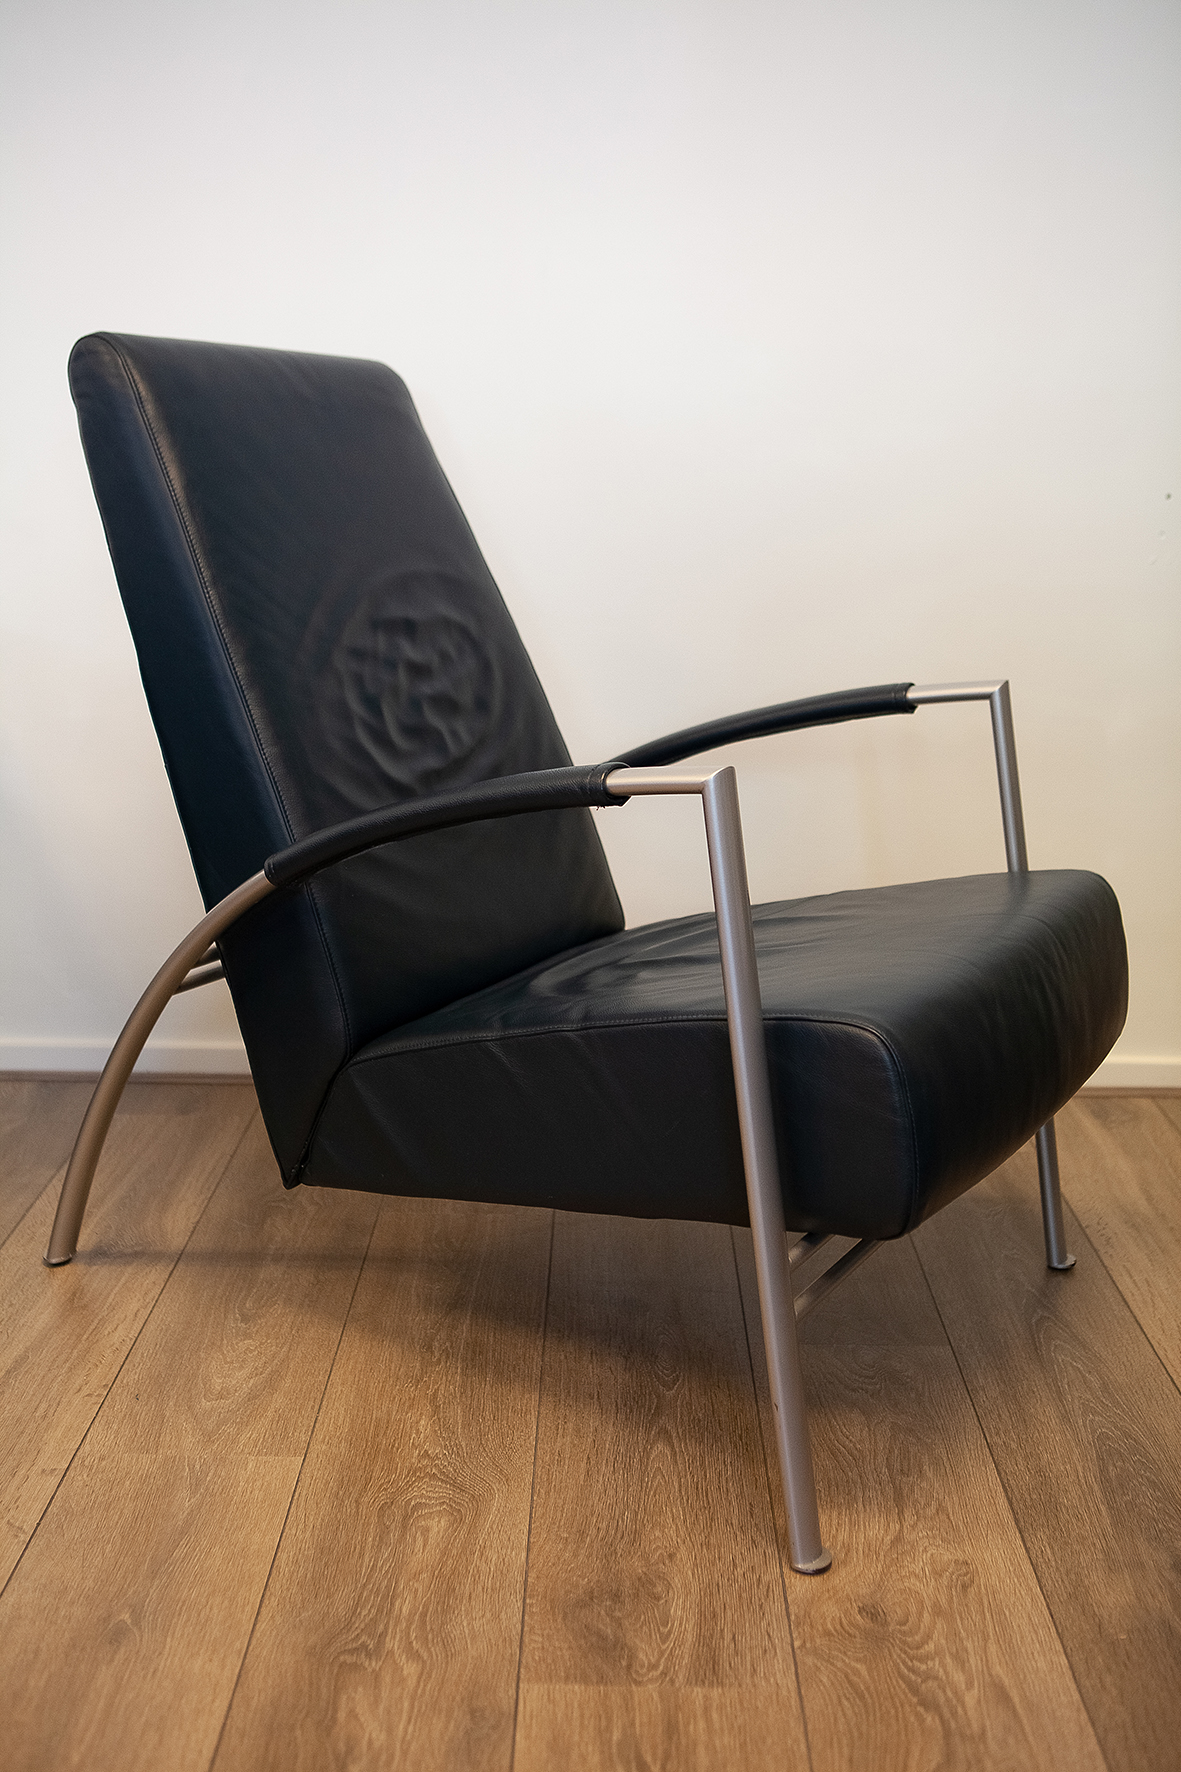 Harvink Design Fauteuil.2 Fraaie Harvink De Club Design Fauteuils In Blauw Leer Missing